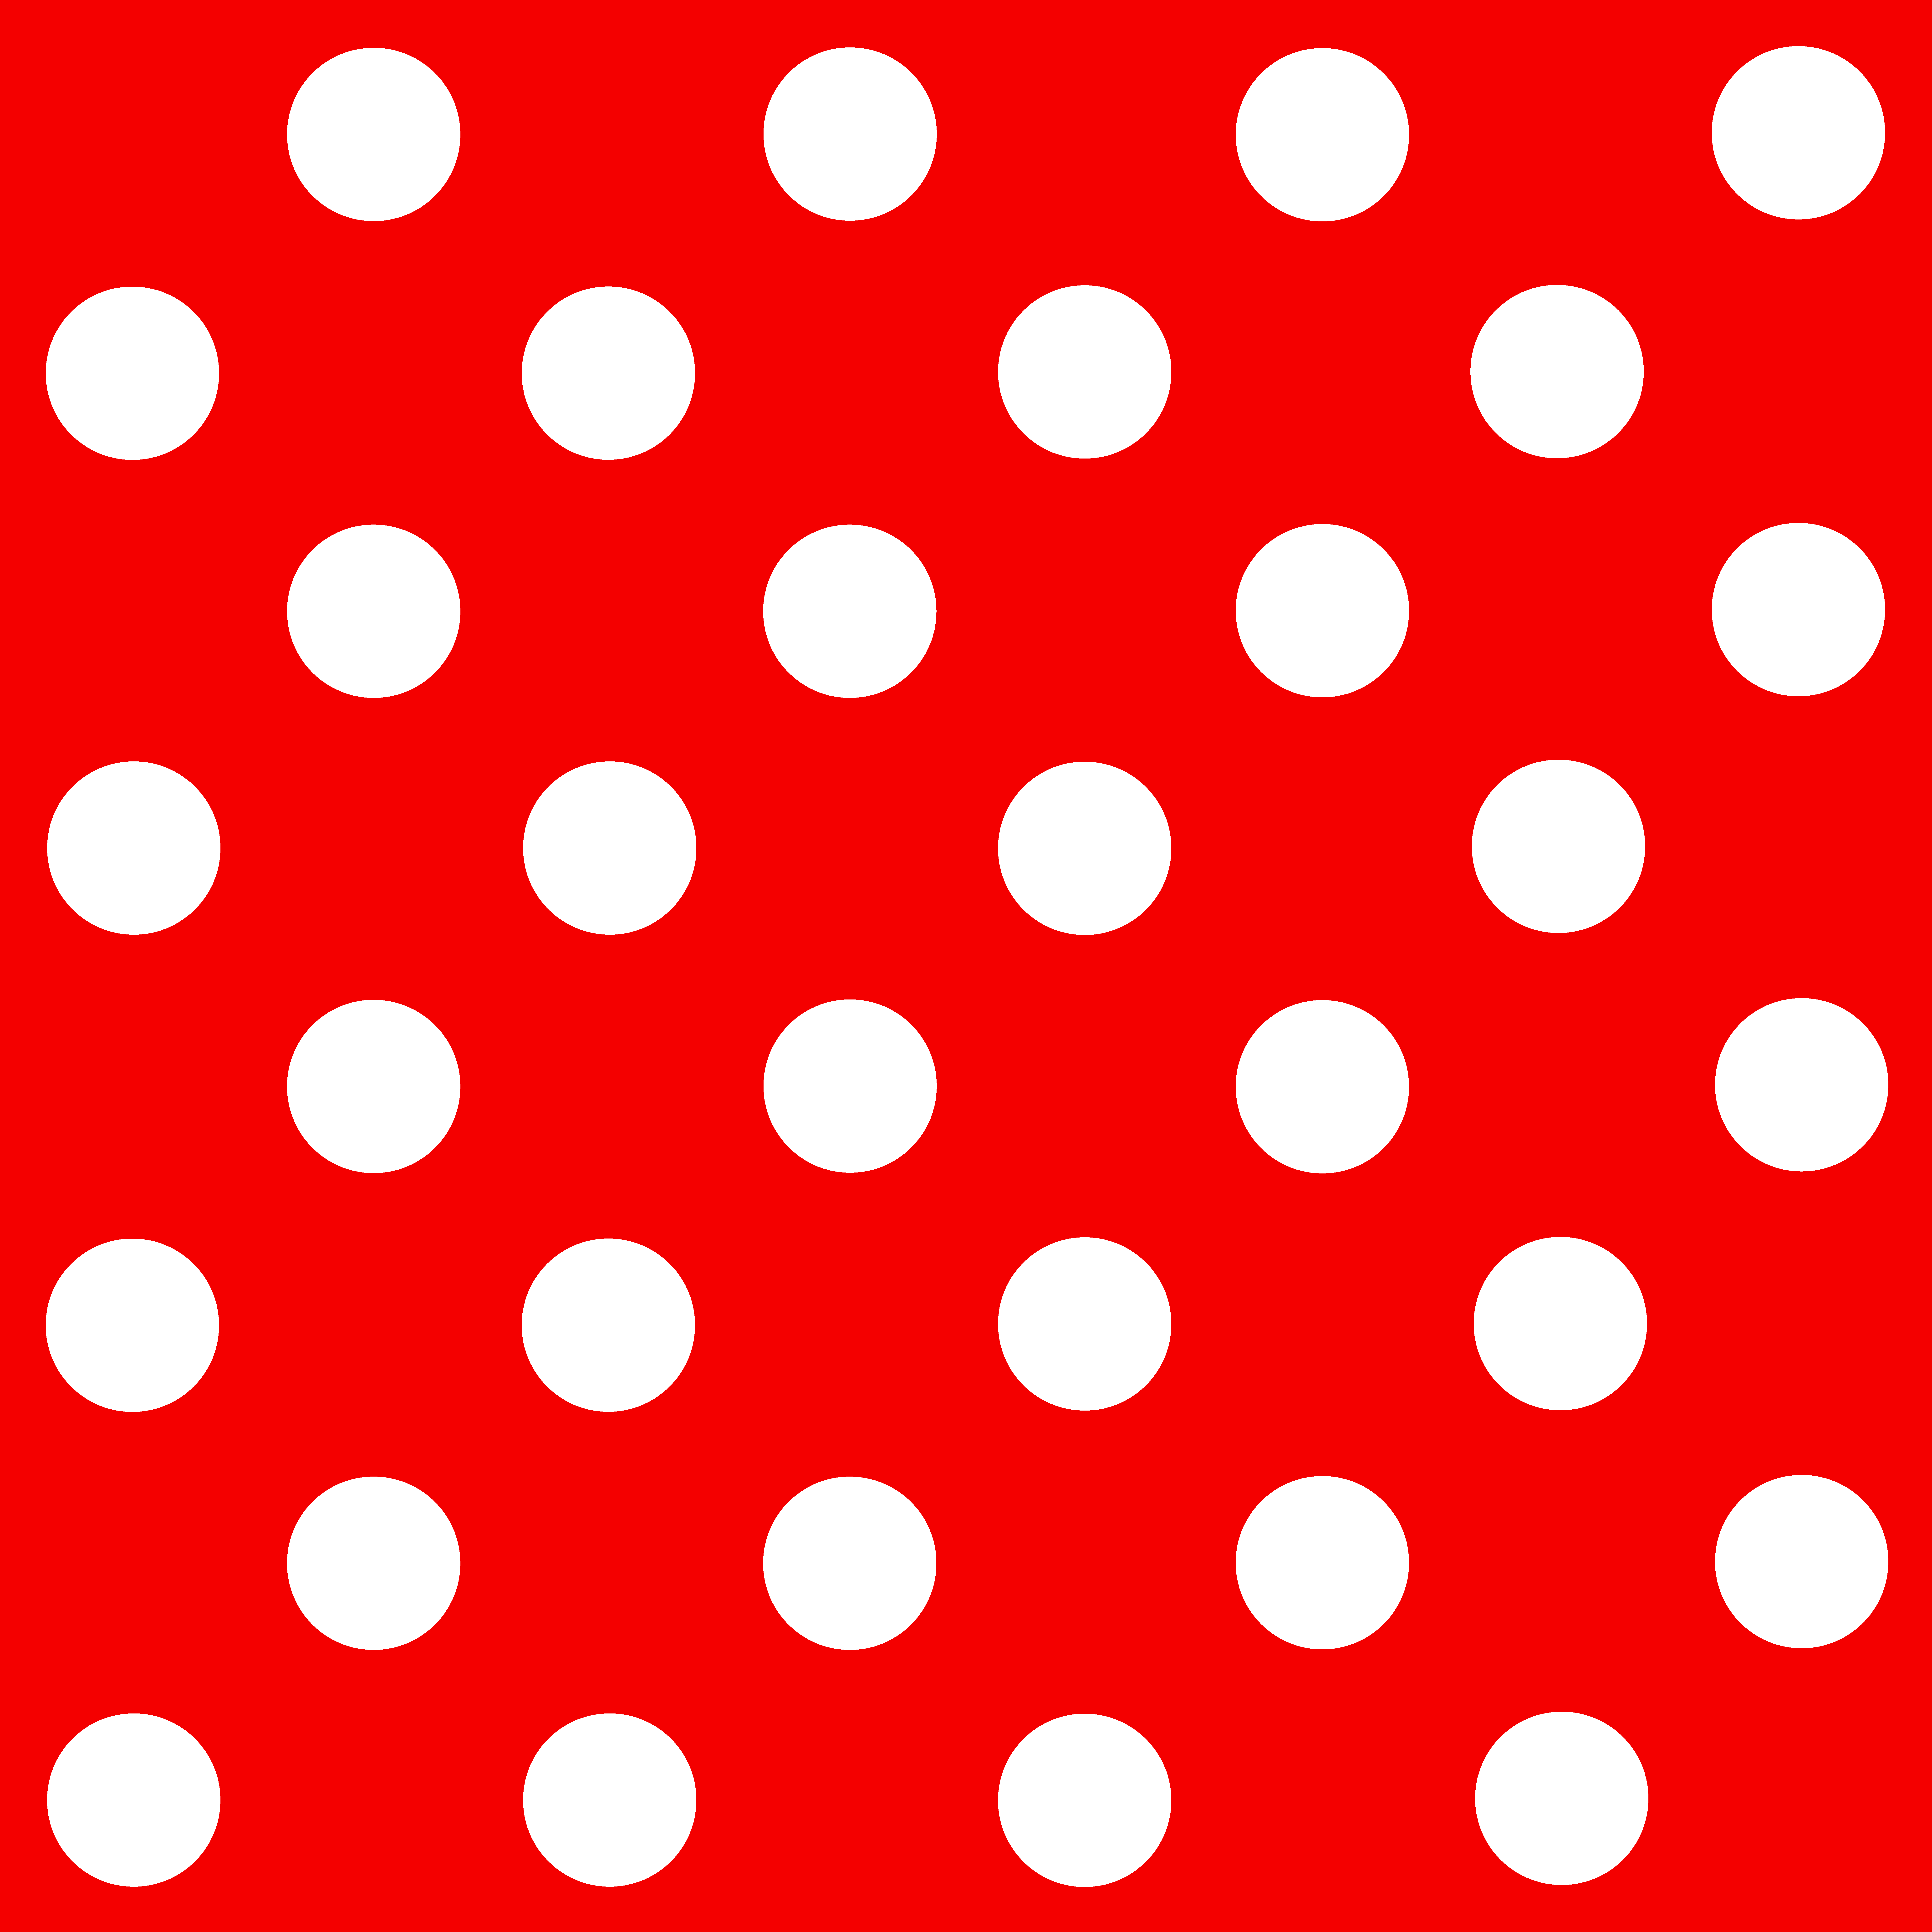 Pattern clipart polka dot Free Clip Clipart  Download